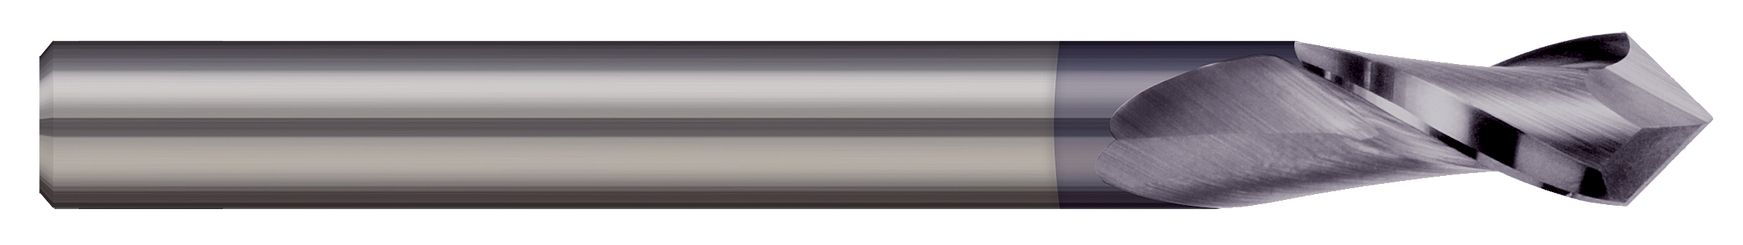 Drill/End Mills - 2 & 4 Flute